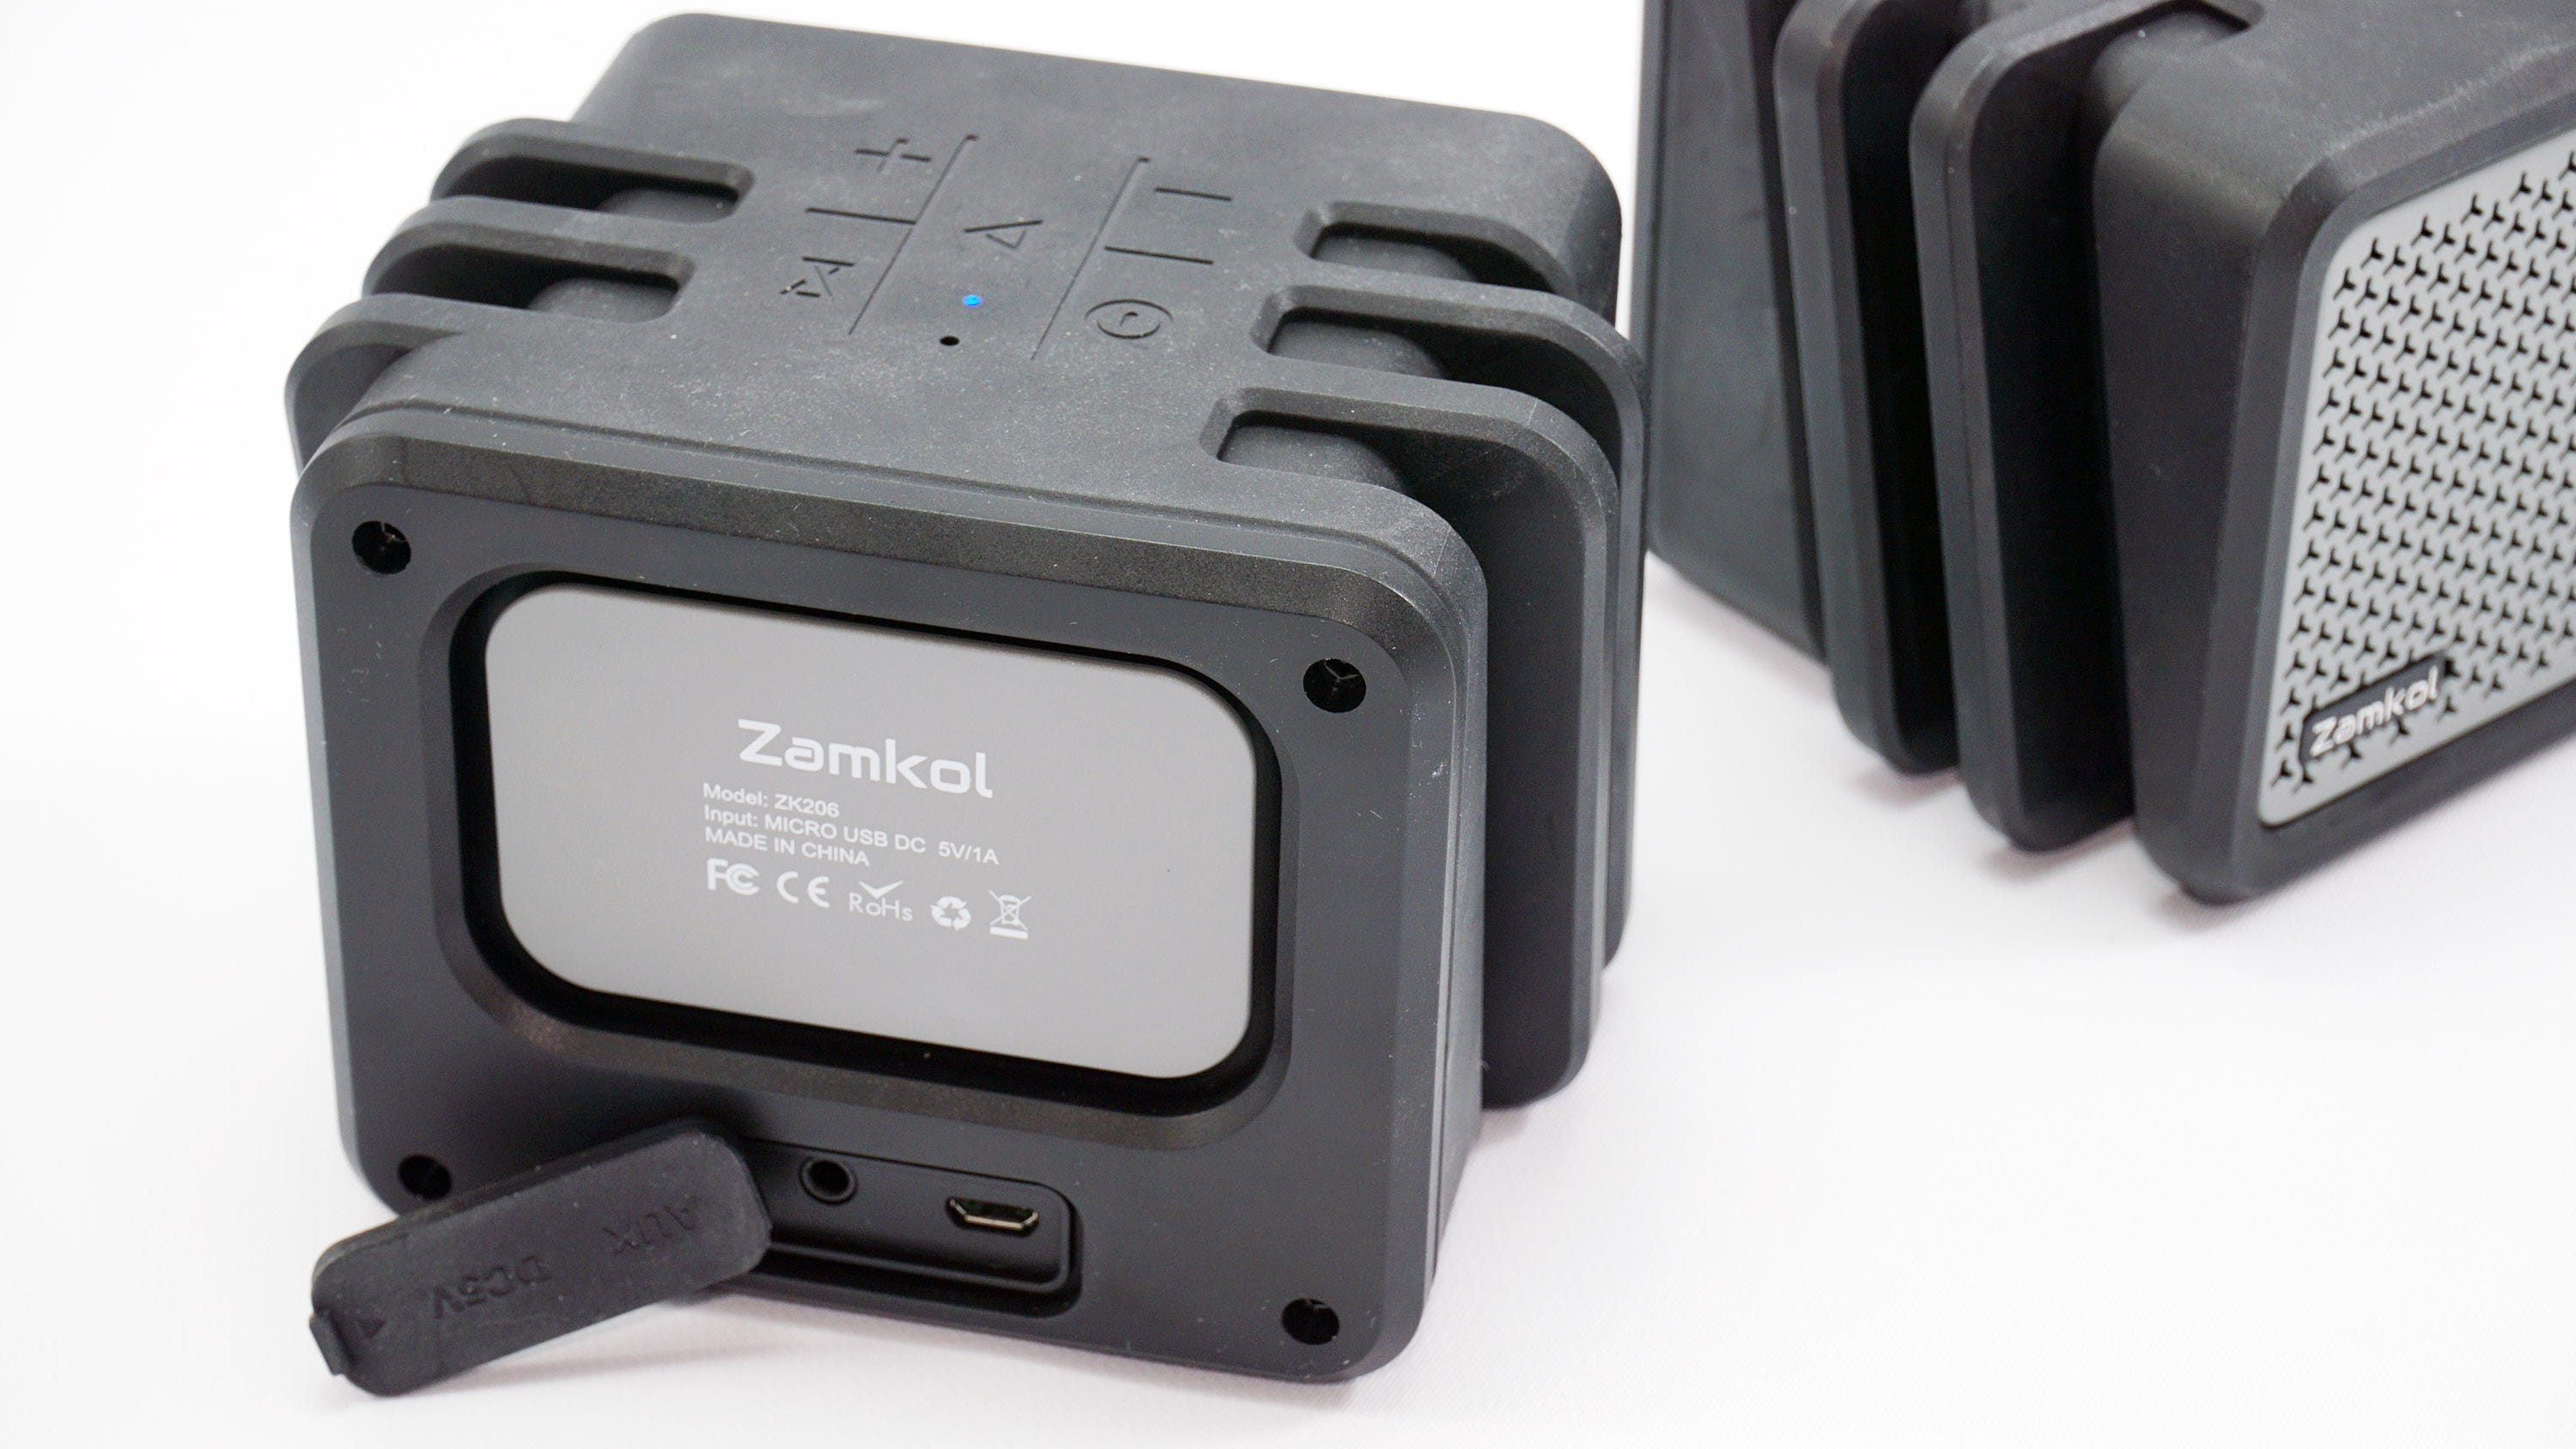 The rear and ports of the Zamkol speaker.